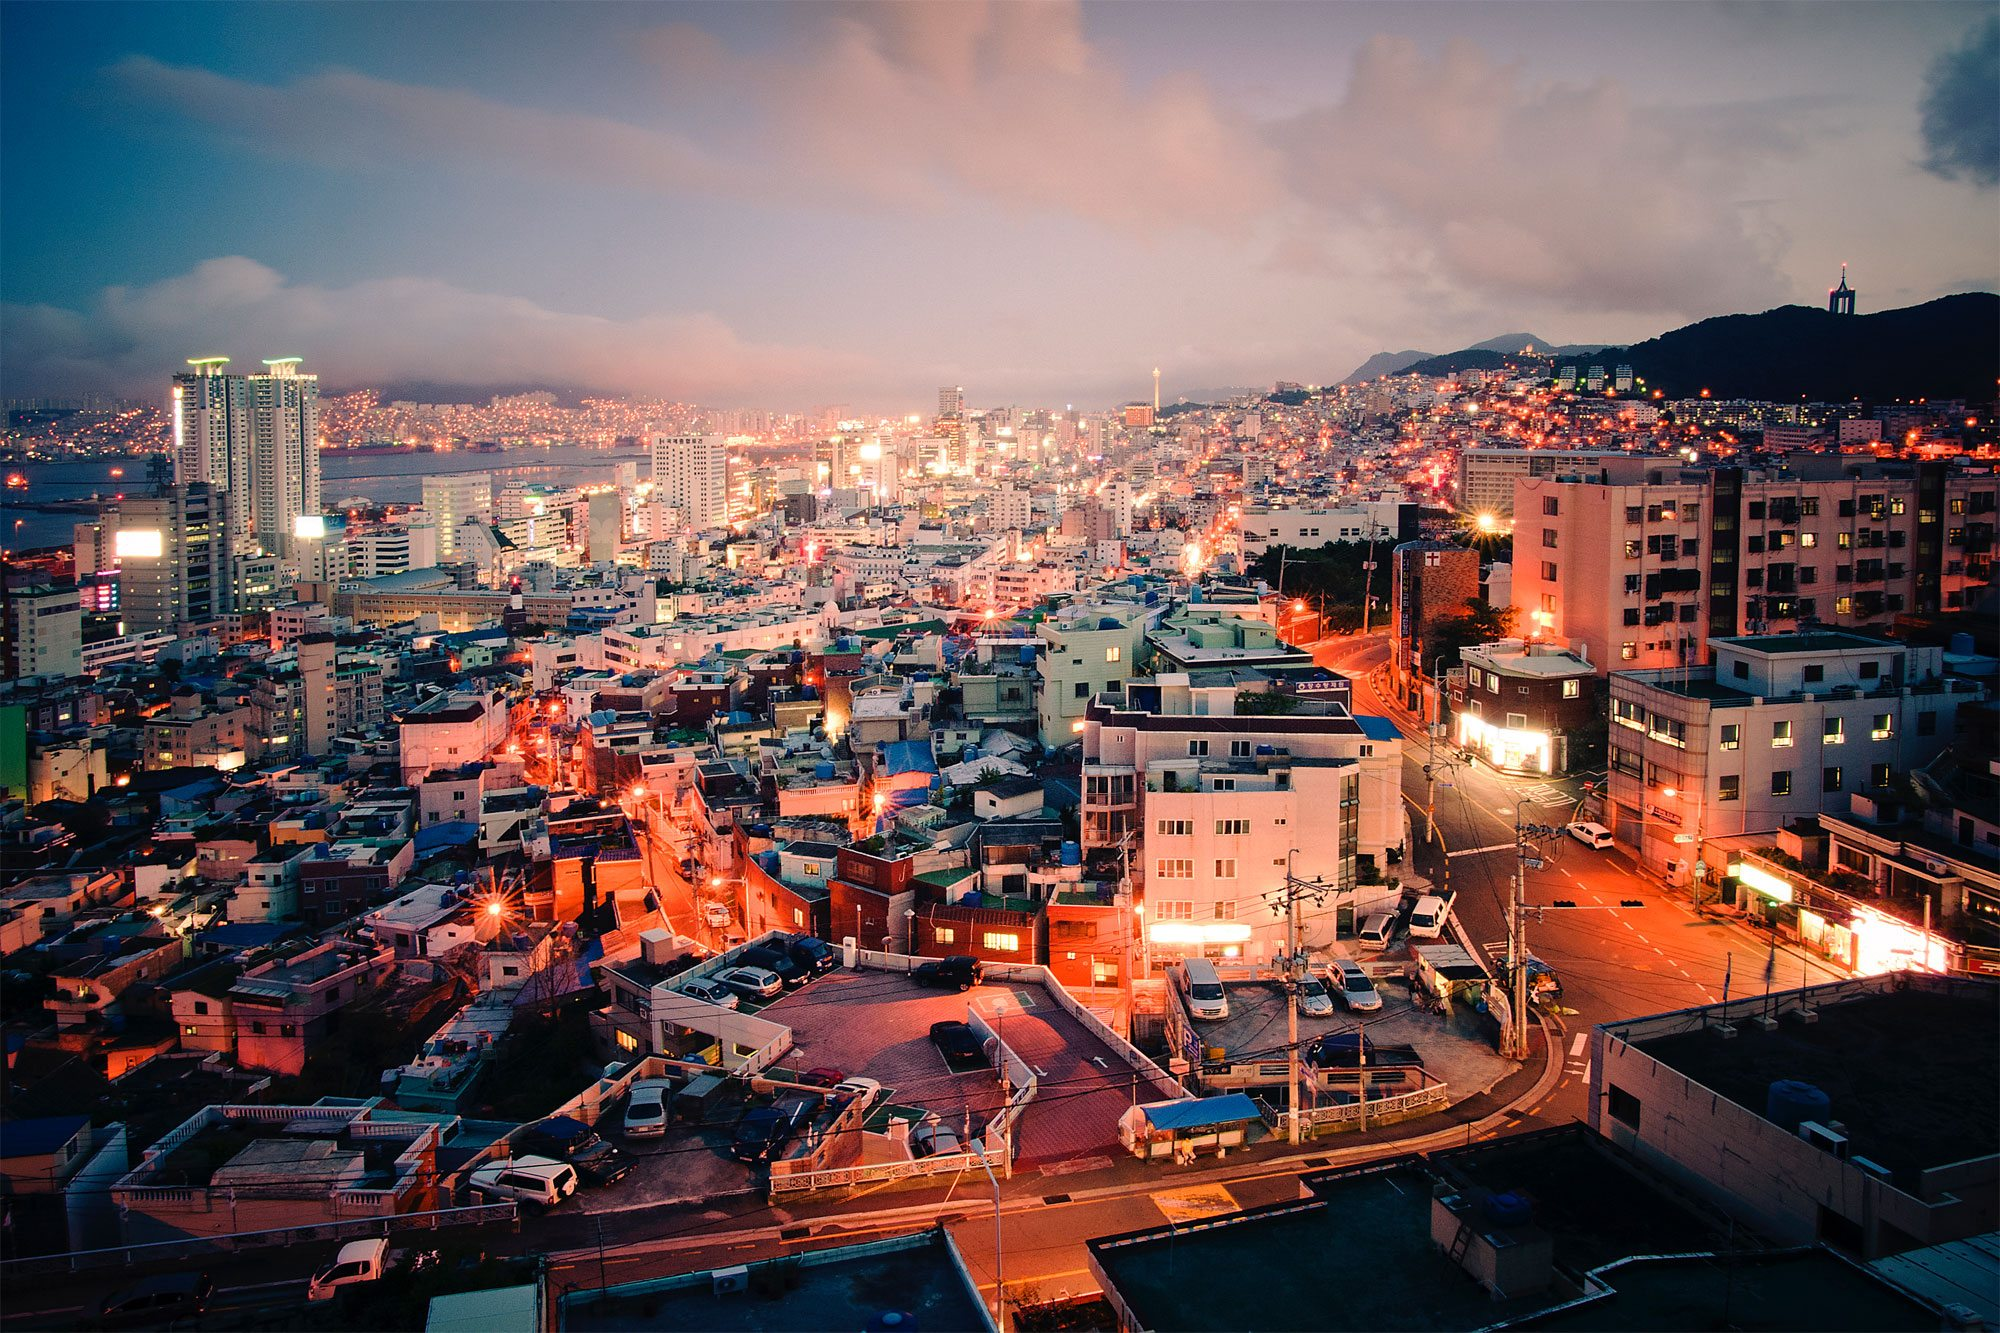 A view of Busan, the Republic of Korea's second largest city after Seoul. UN Photo/Kibae Park